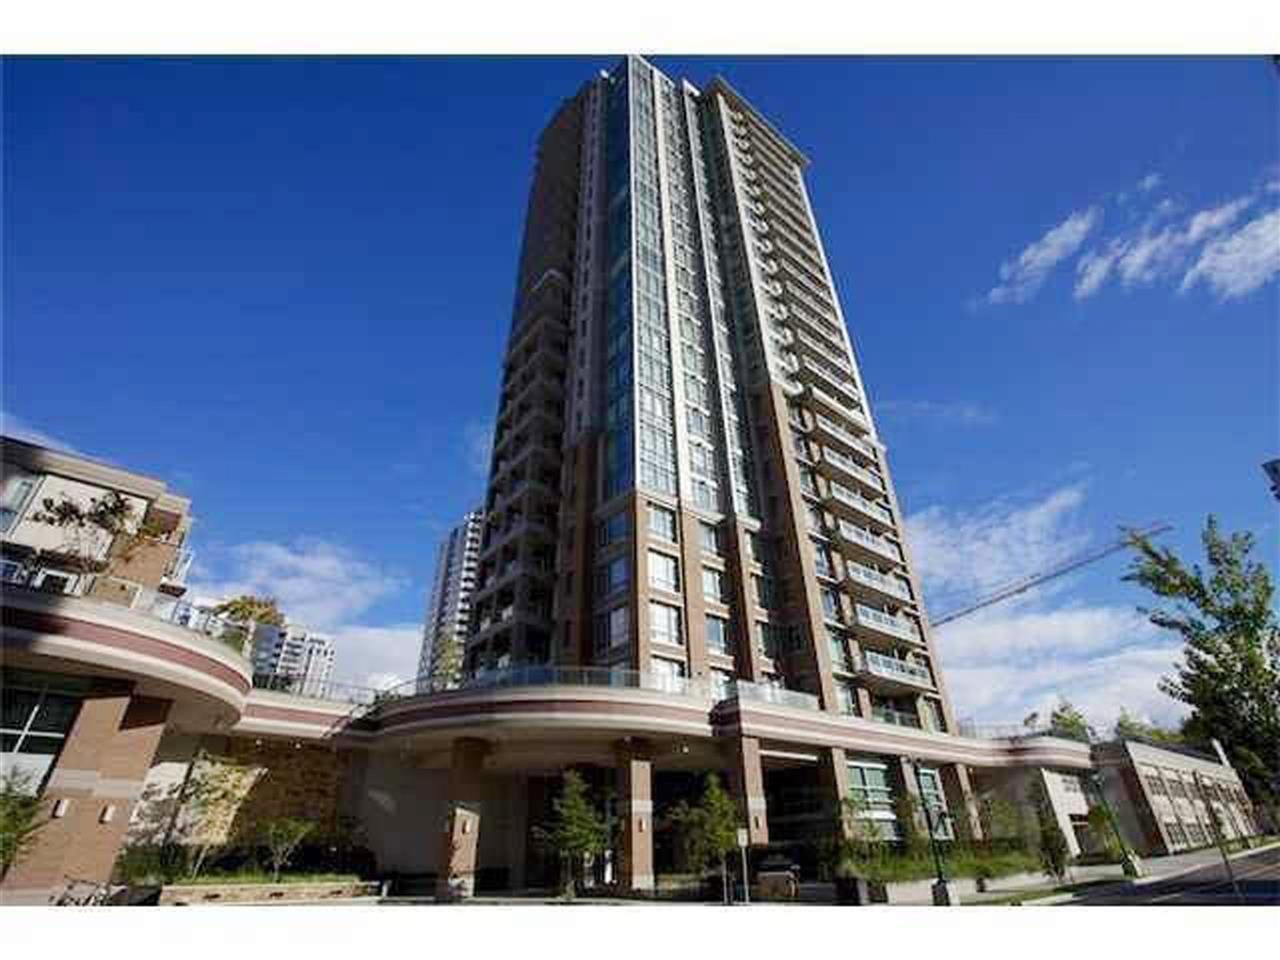 """Main Photo: 1102 1155 THE HIGH Street in Coquitlam: North Coquitlam Condo for sale in """"M ONE"""" : MLS®# R2009155"""